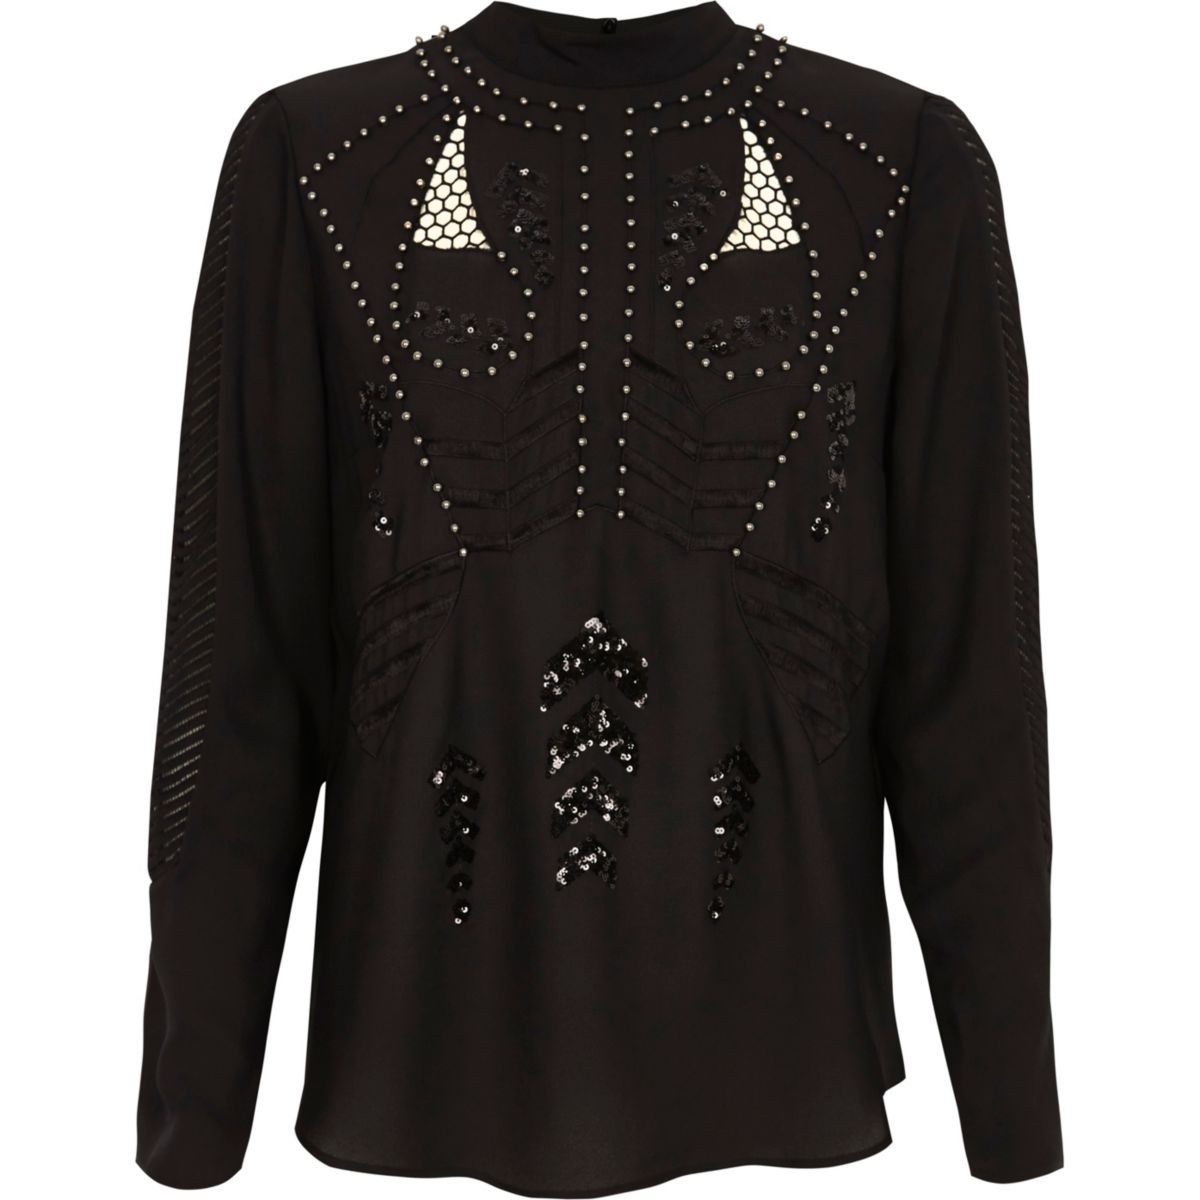 Black studded high neck long sleeve top